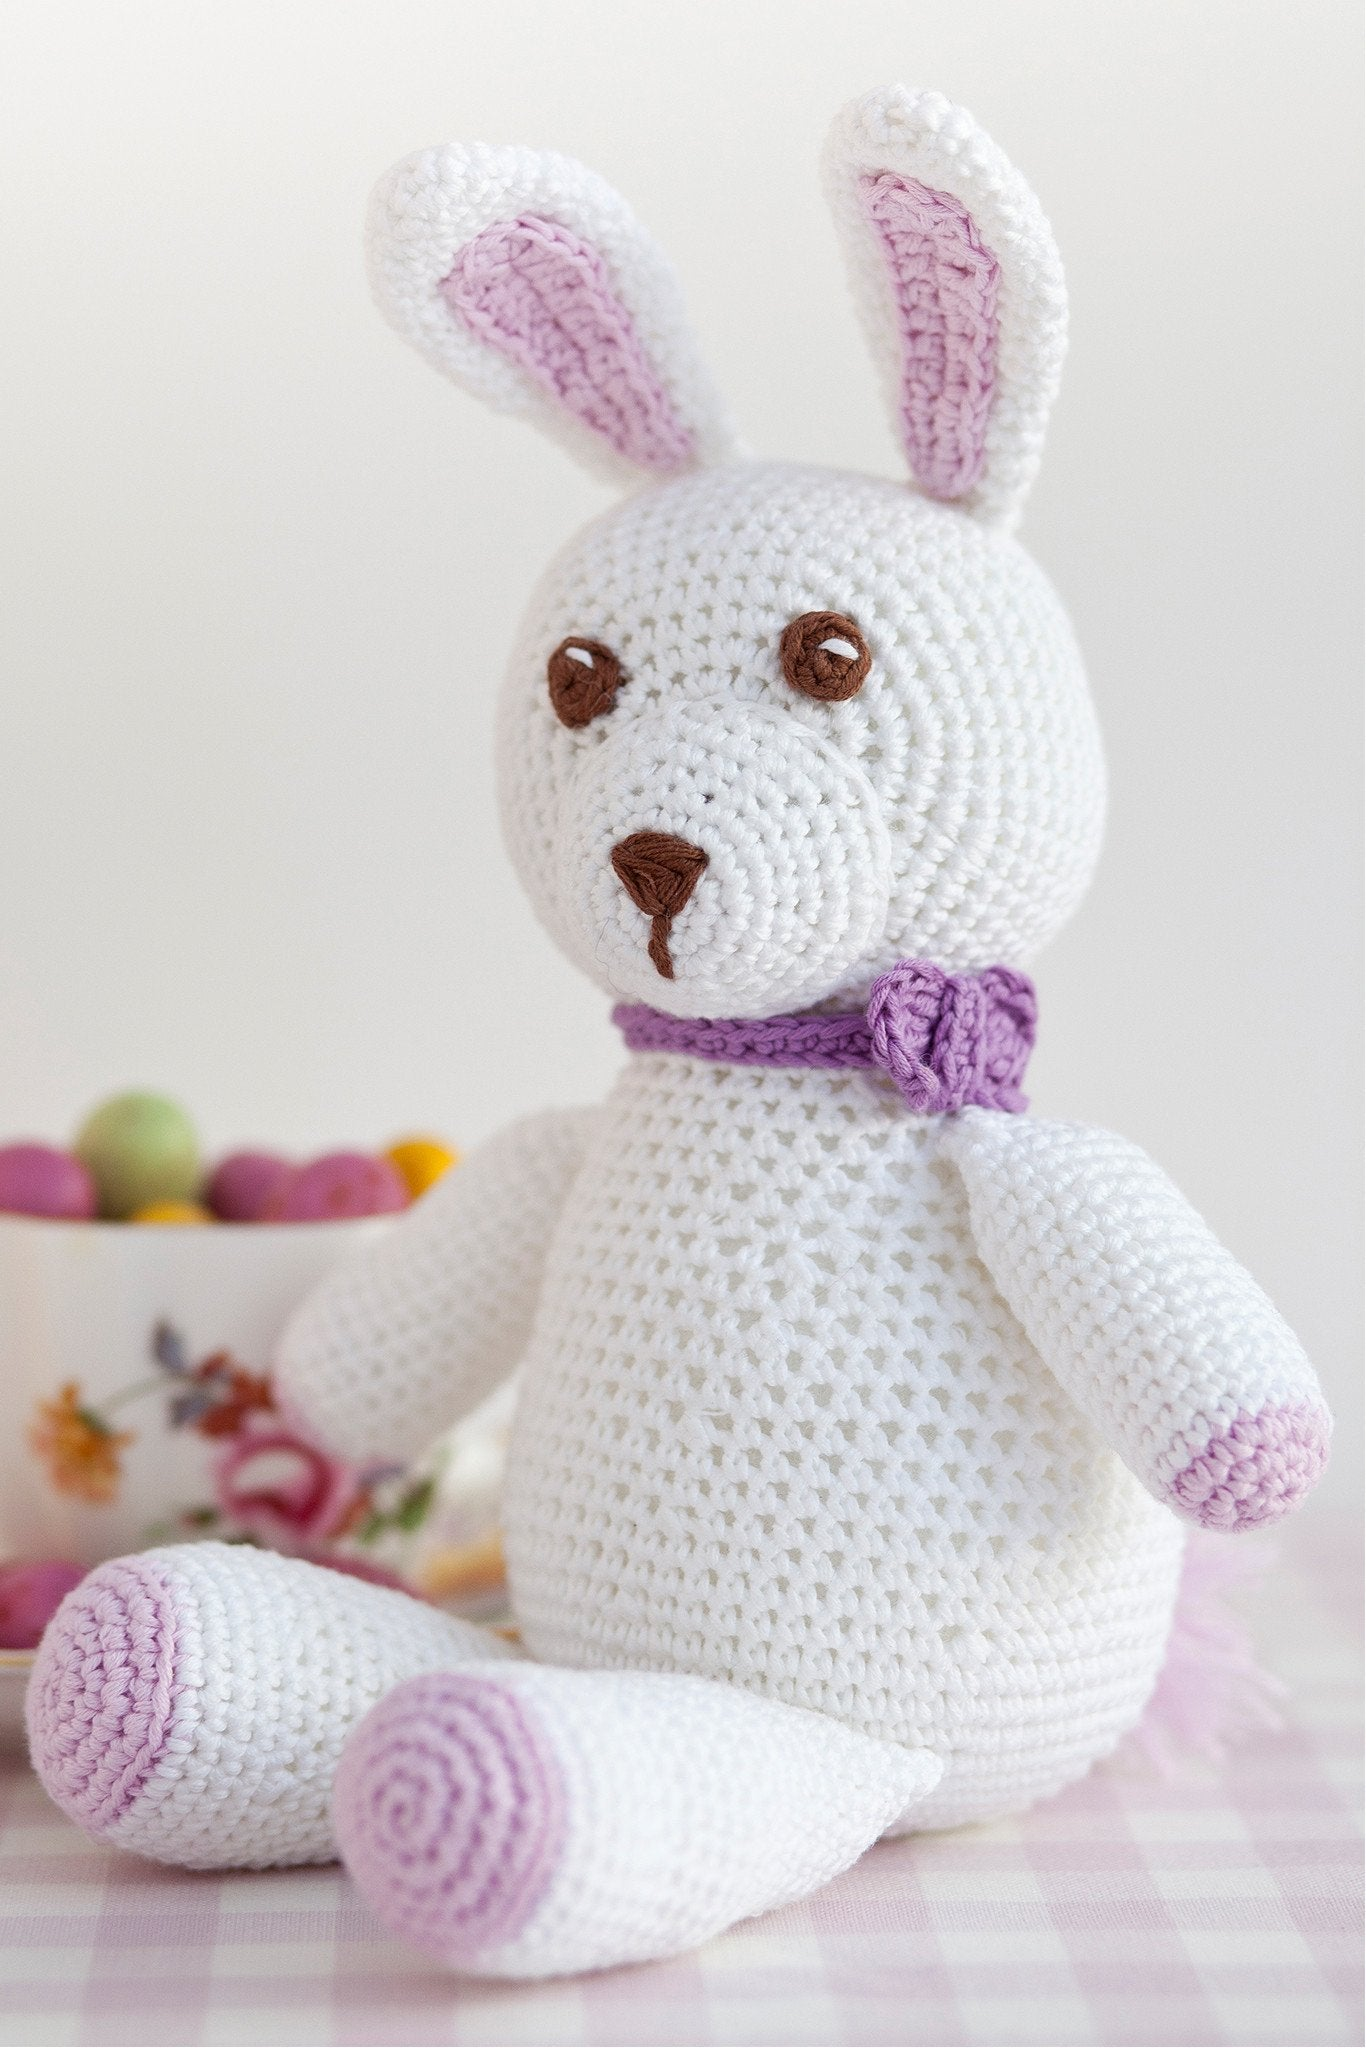 Easter bunny rabbit crochet pattern the knitting network easter bunny rabbit crochet pattern ccuart Choice Image